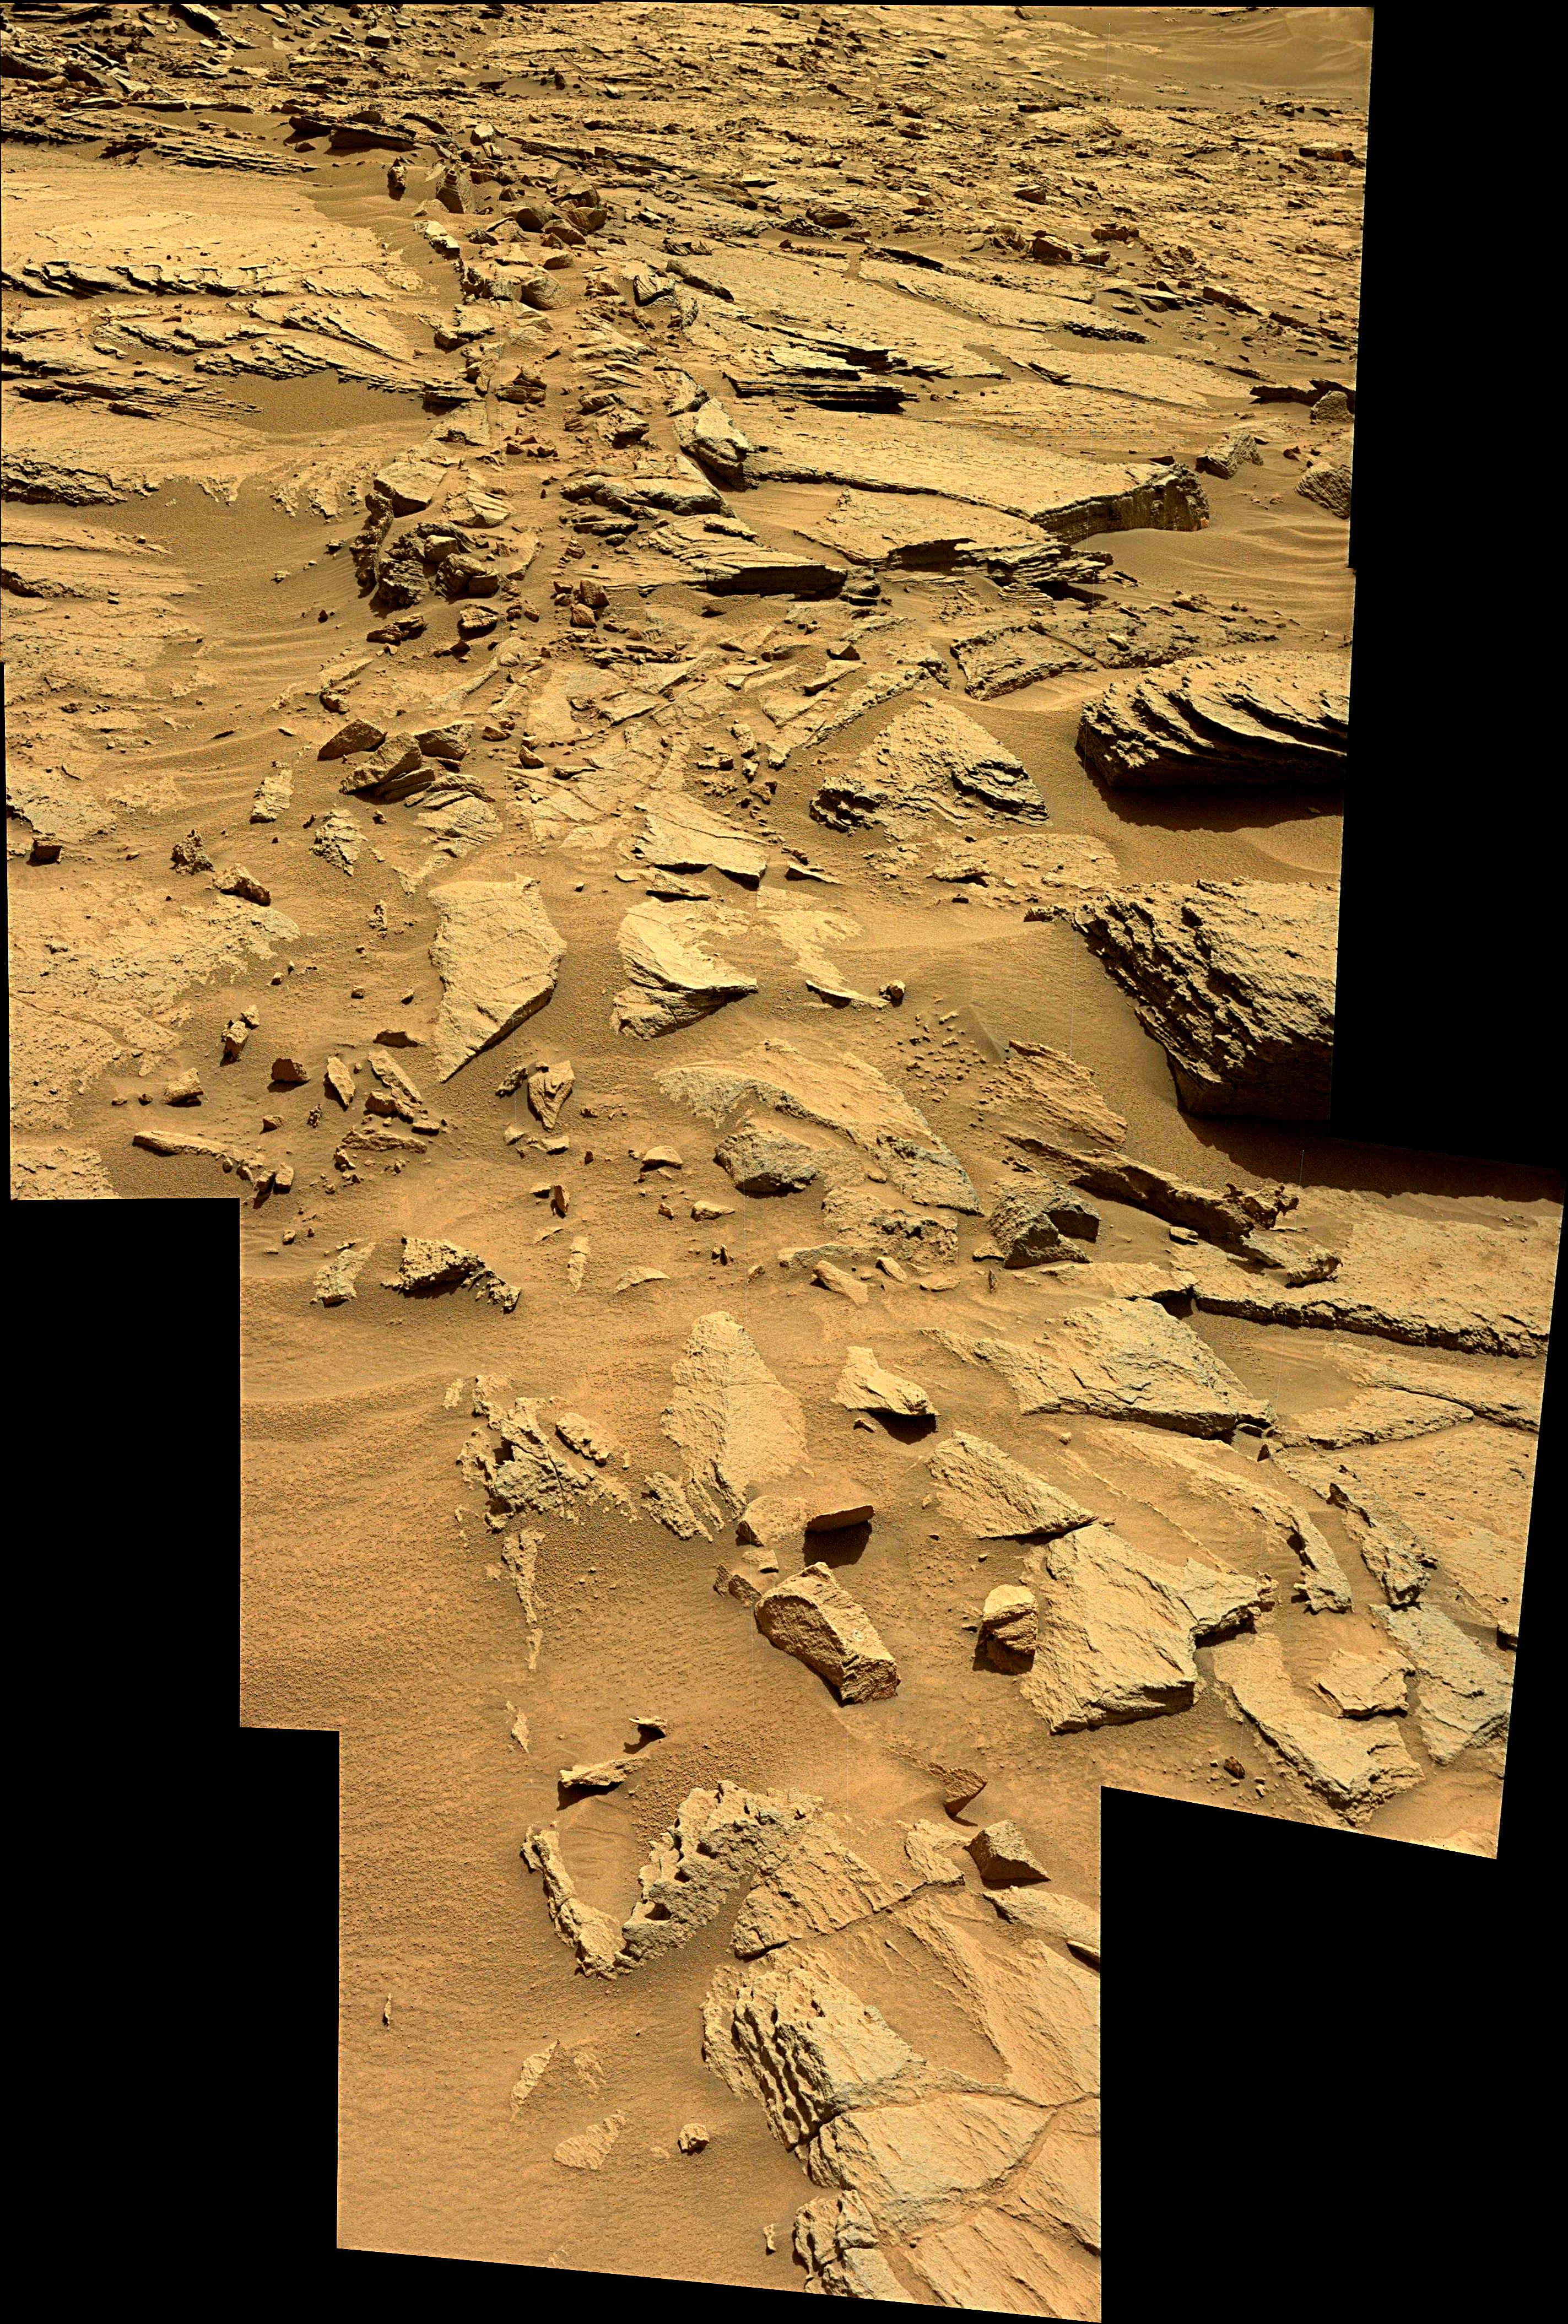 panoramic curiosity rover view 1 enhanced - sol 1373 - was life on mars